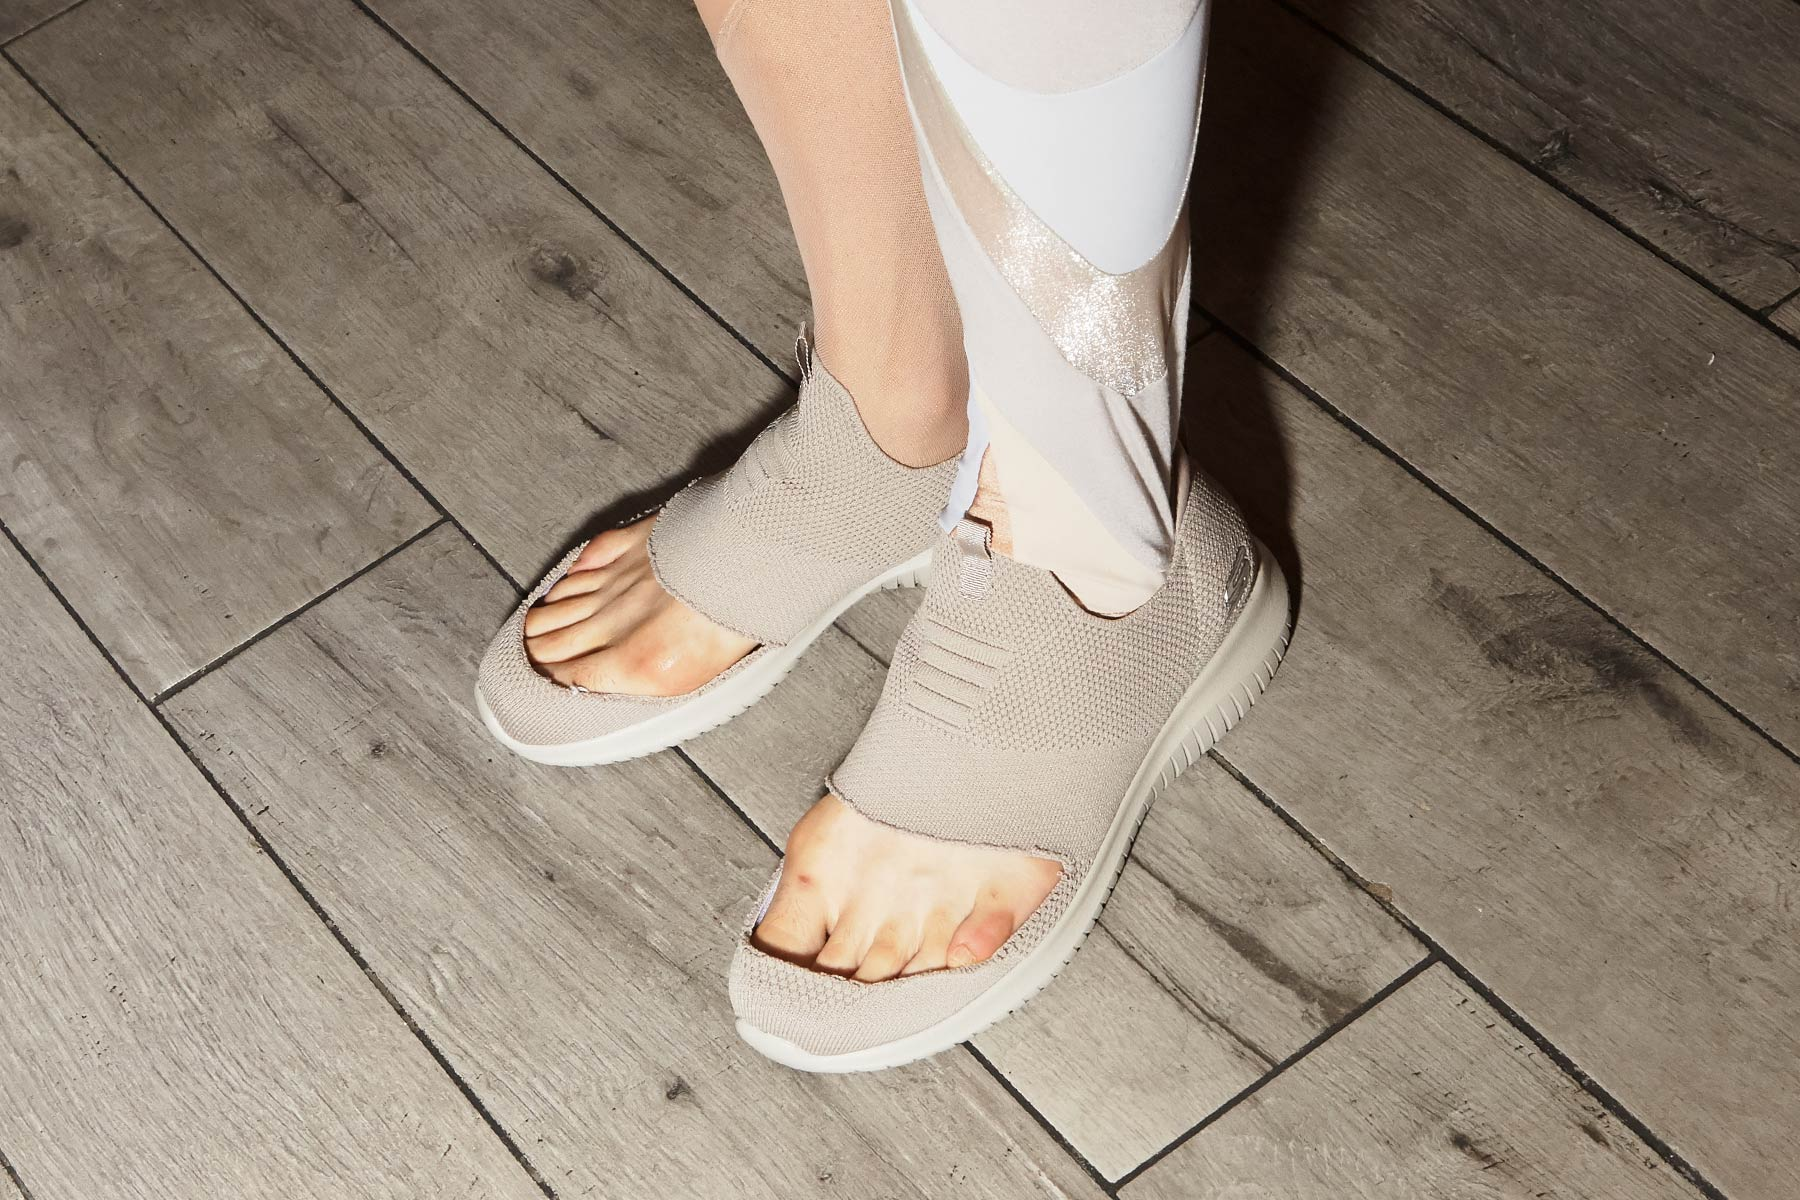 Shoes designed by threeASFOUR for S/S 2020. Photographed backstage by Alexander Thompson for Ponyboy magazine NY.